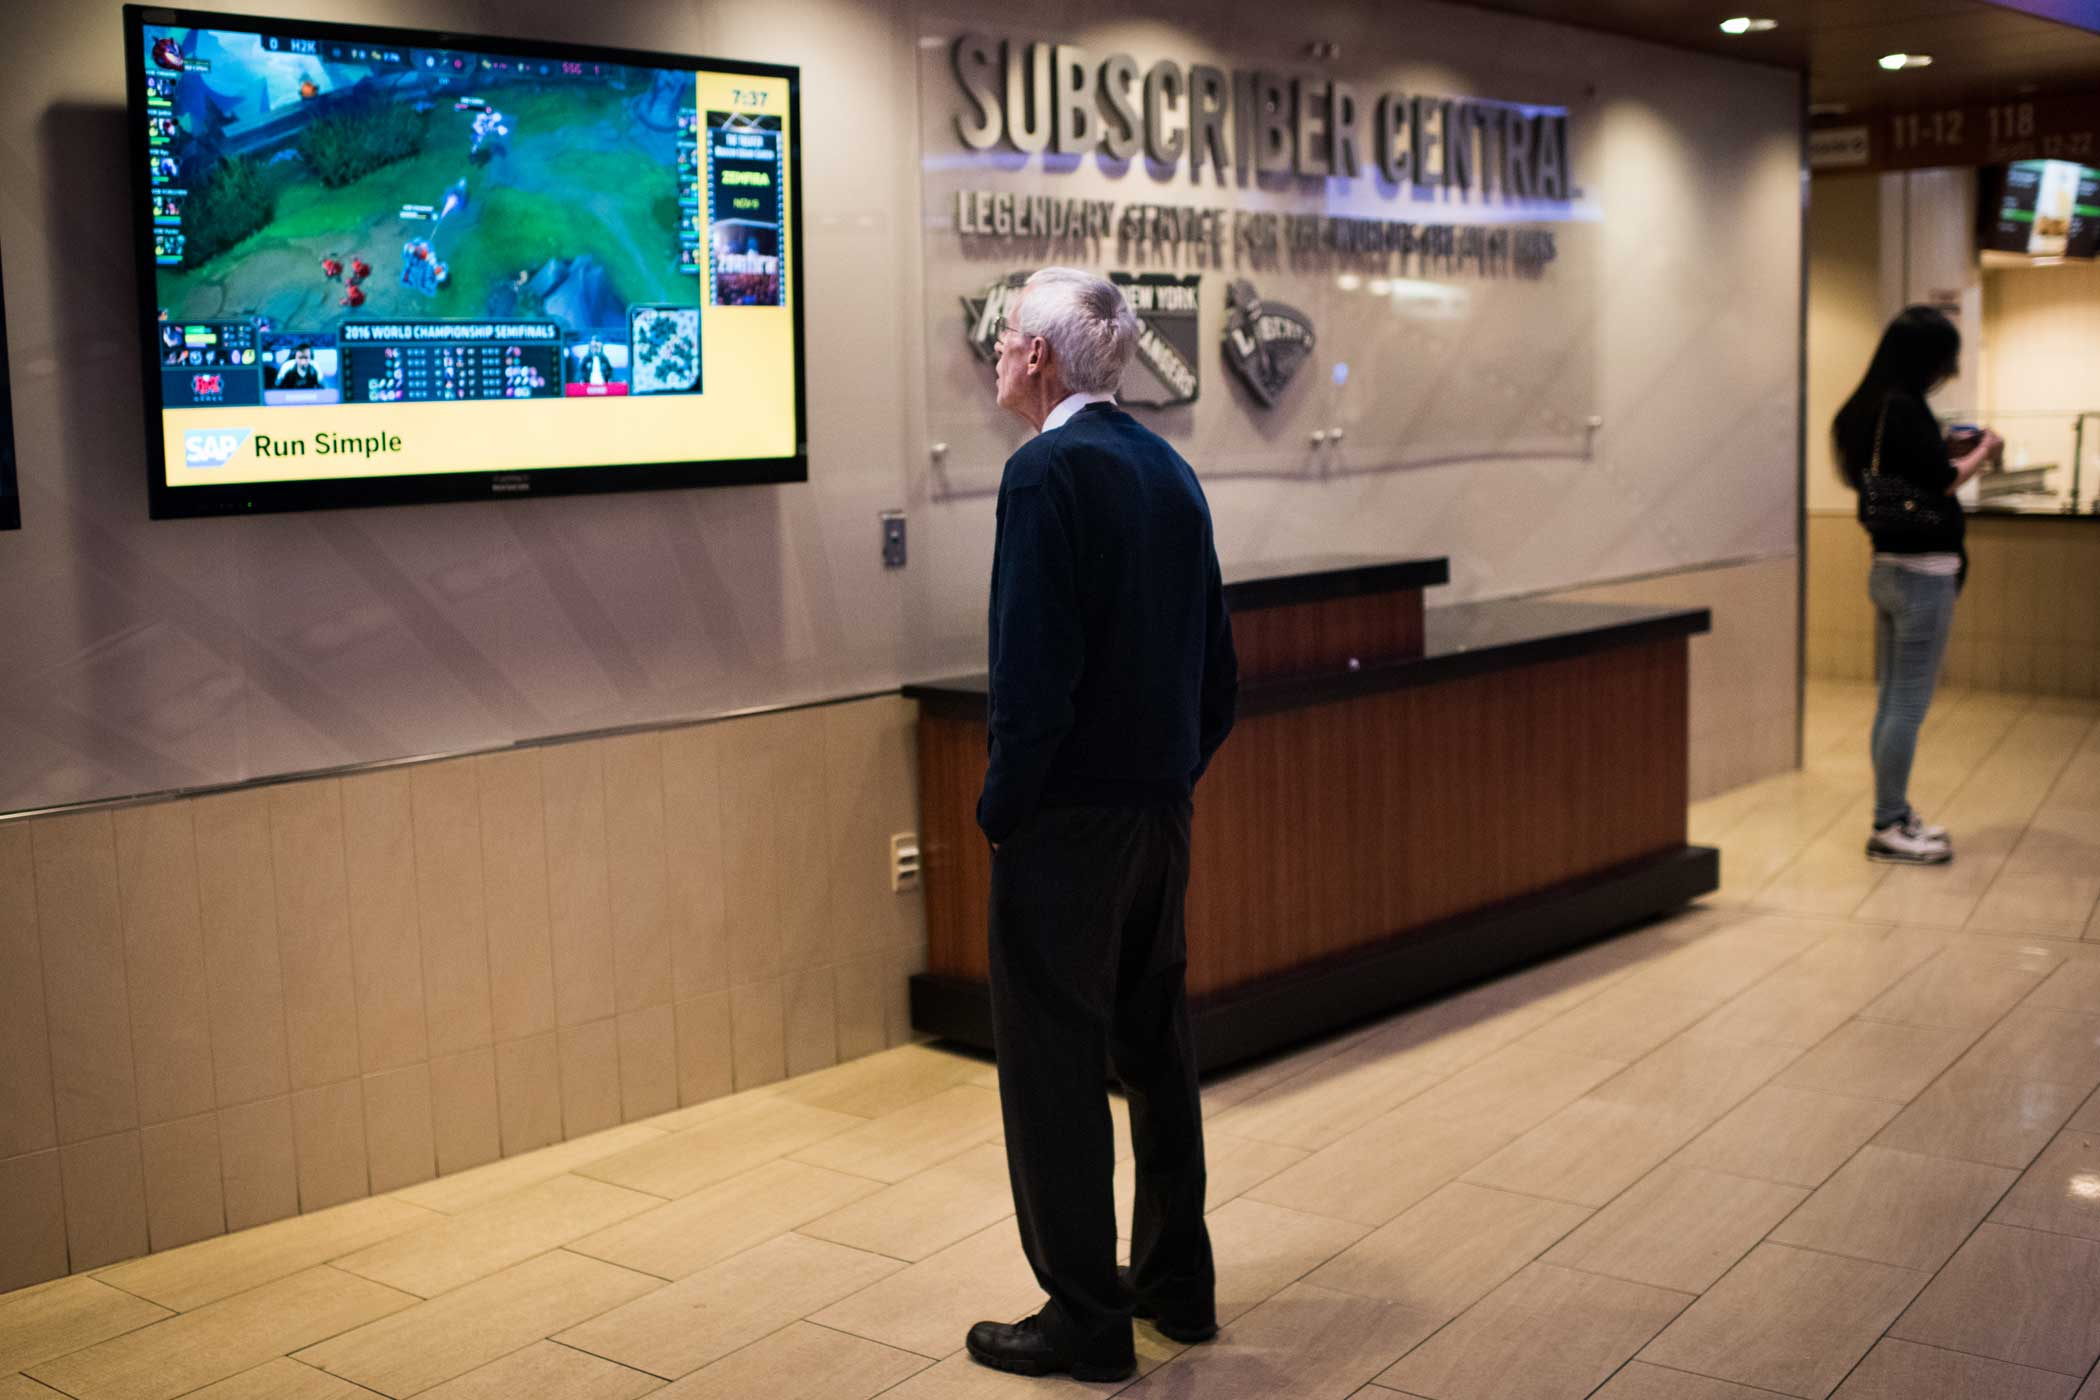 A member of the Madison Square Garden staff watches the game on a screen in the concourse.